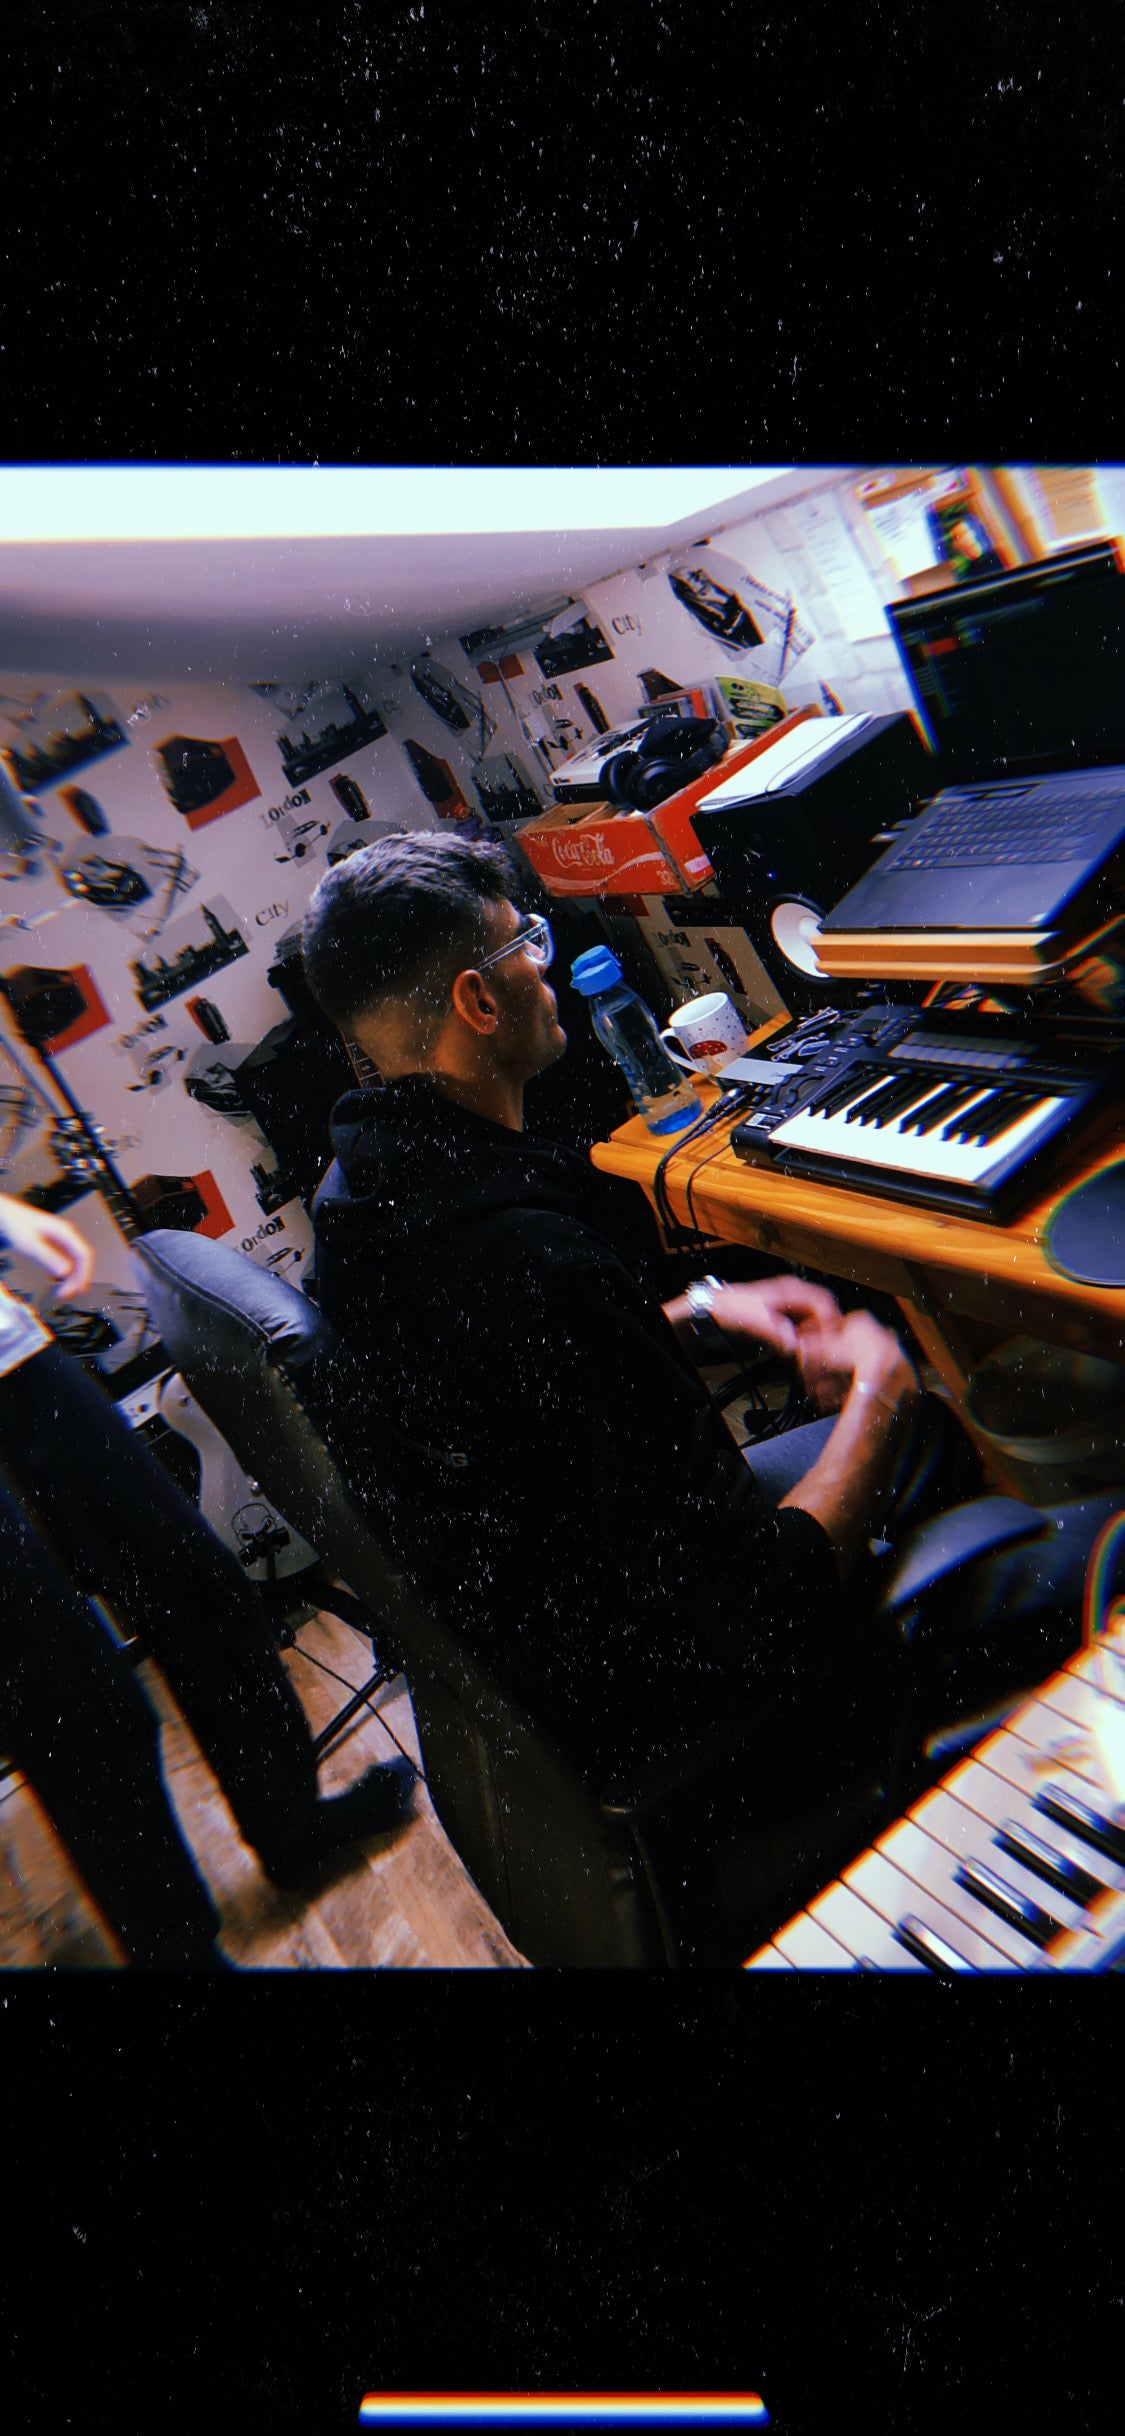 DONMD in the studio